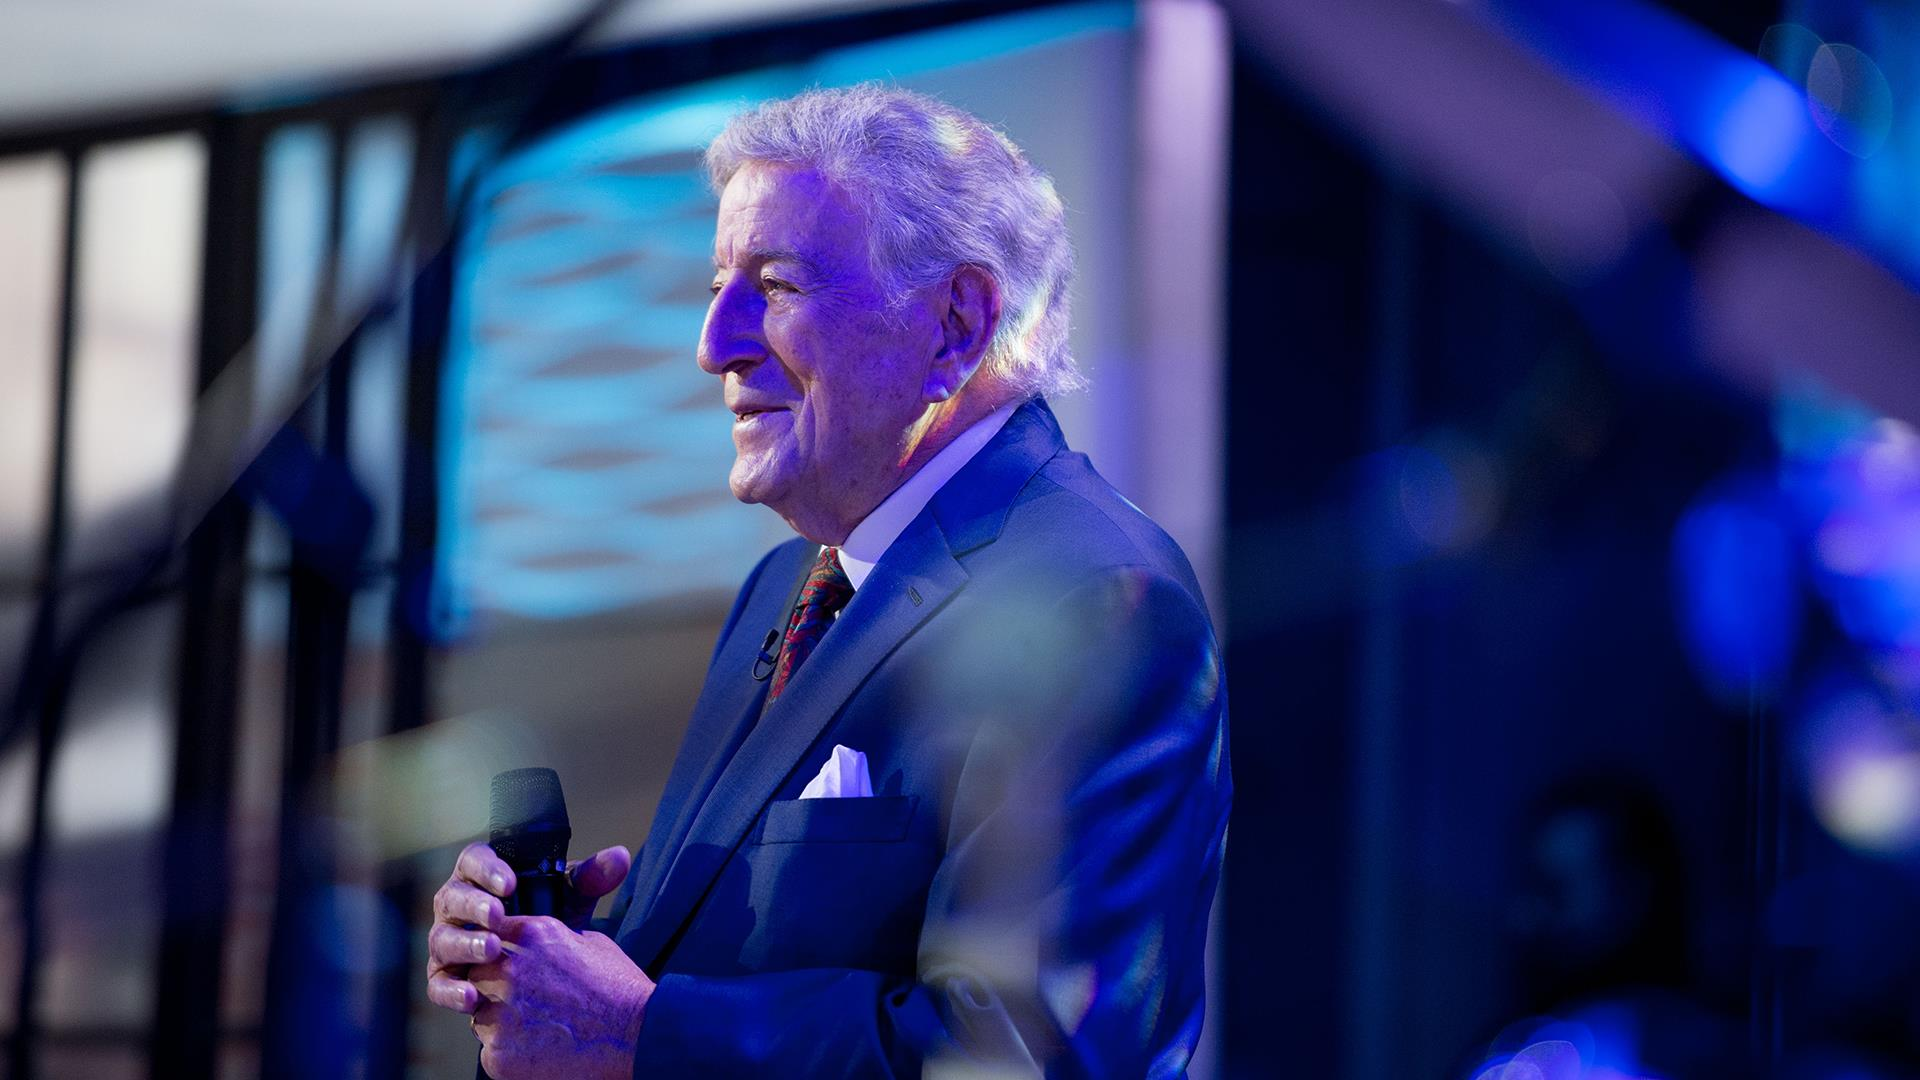 Watch Tony Bennett sing 'White Christmas' live on TODAY - TODAY.com